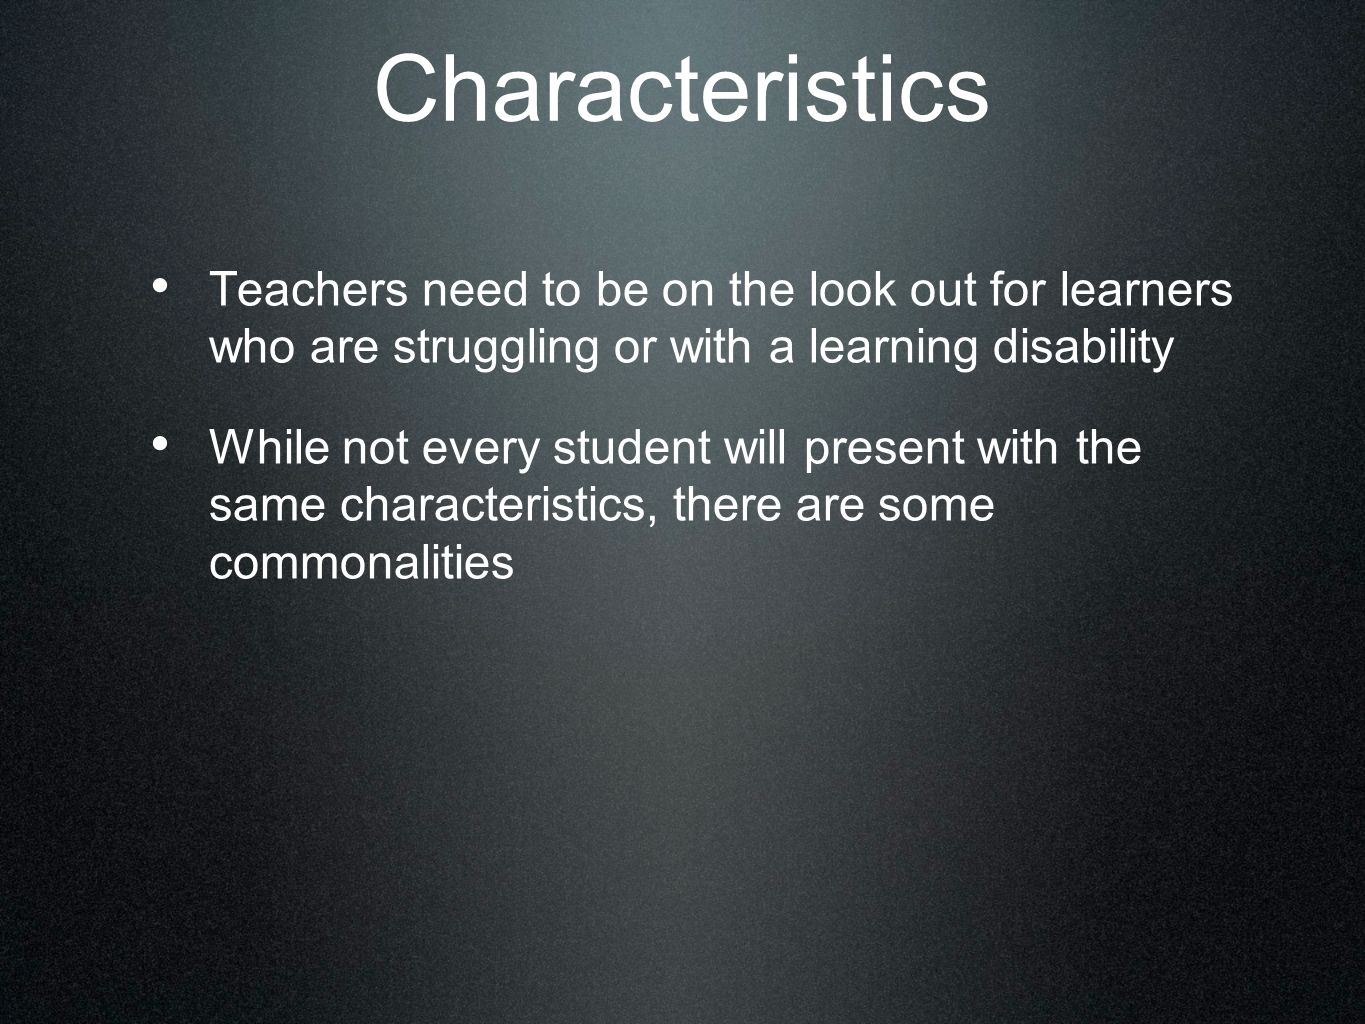 Characteristics Teachers need to be on the look out for learners who are struggling or with a learning disability While not every student will present with the same characteristics, there are some commonalities